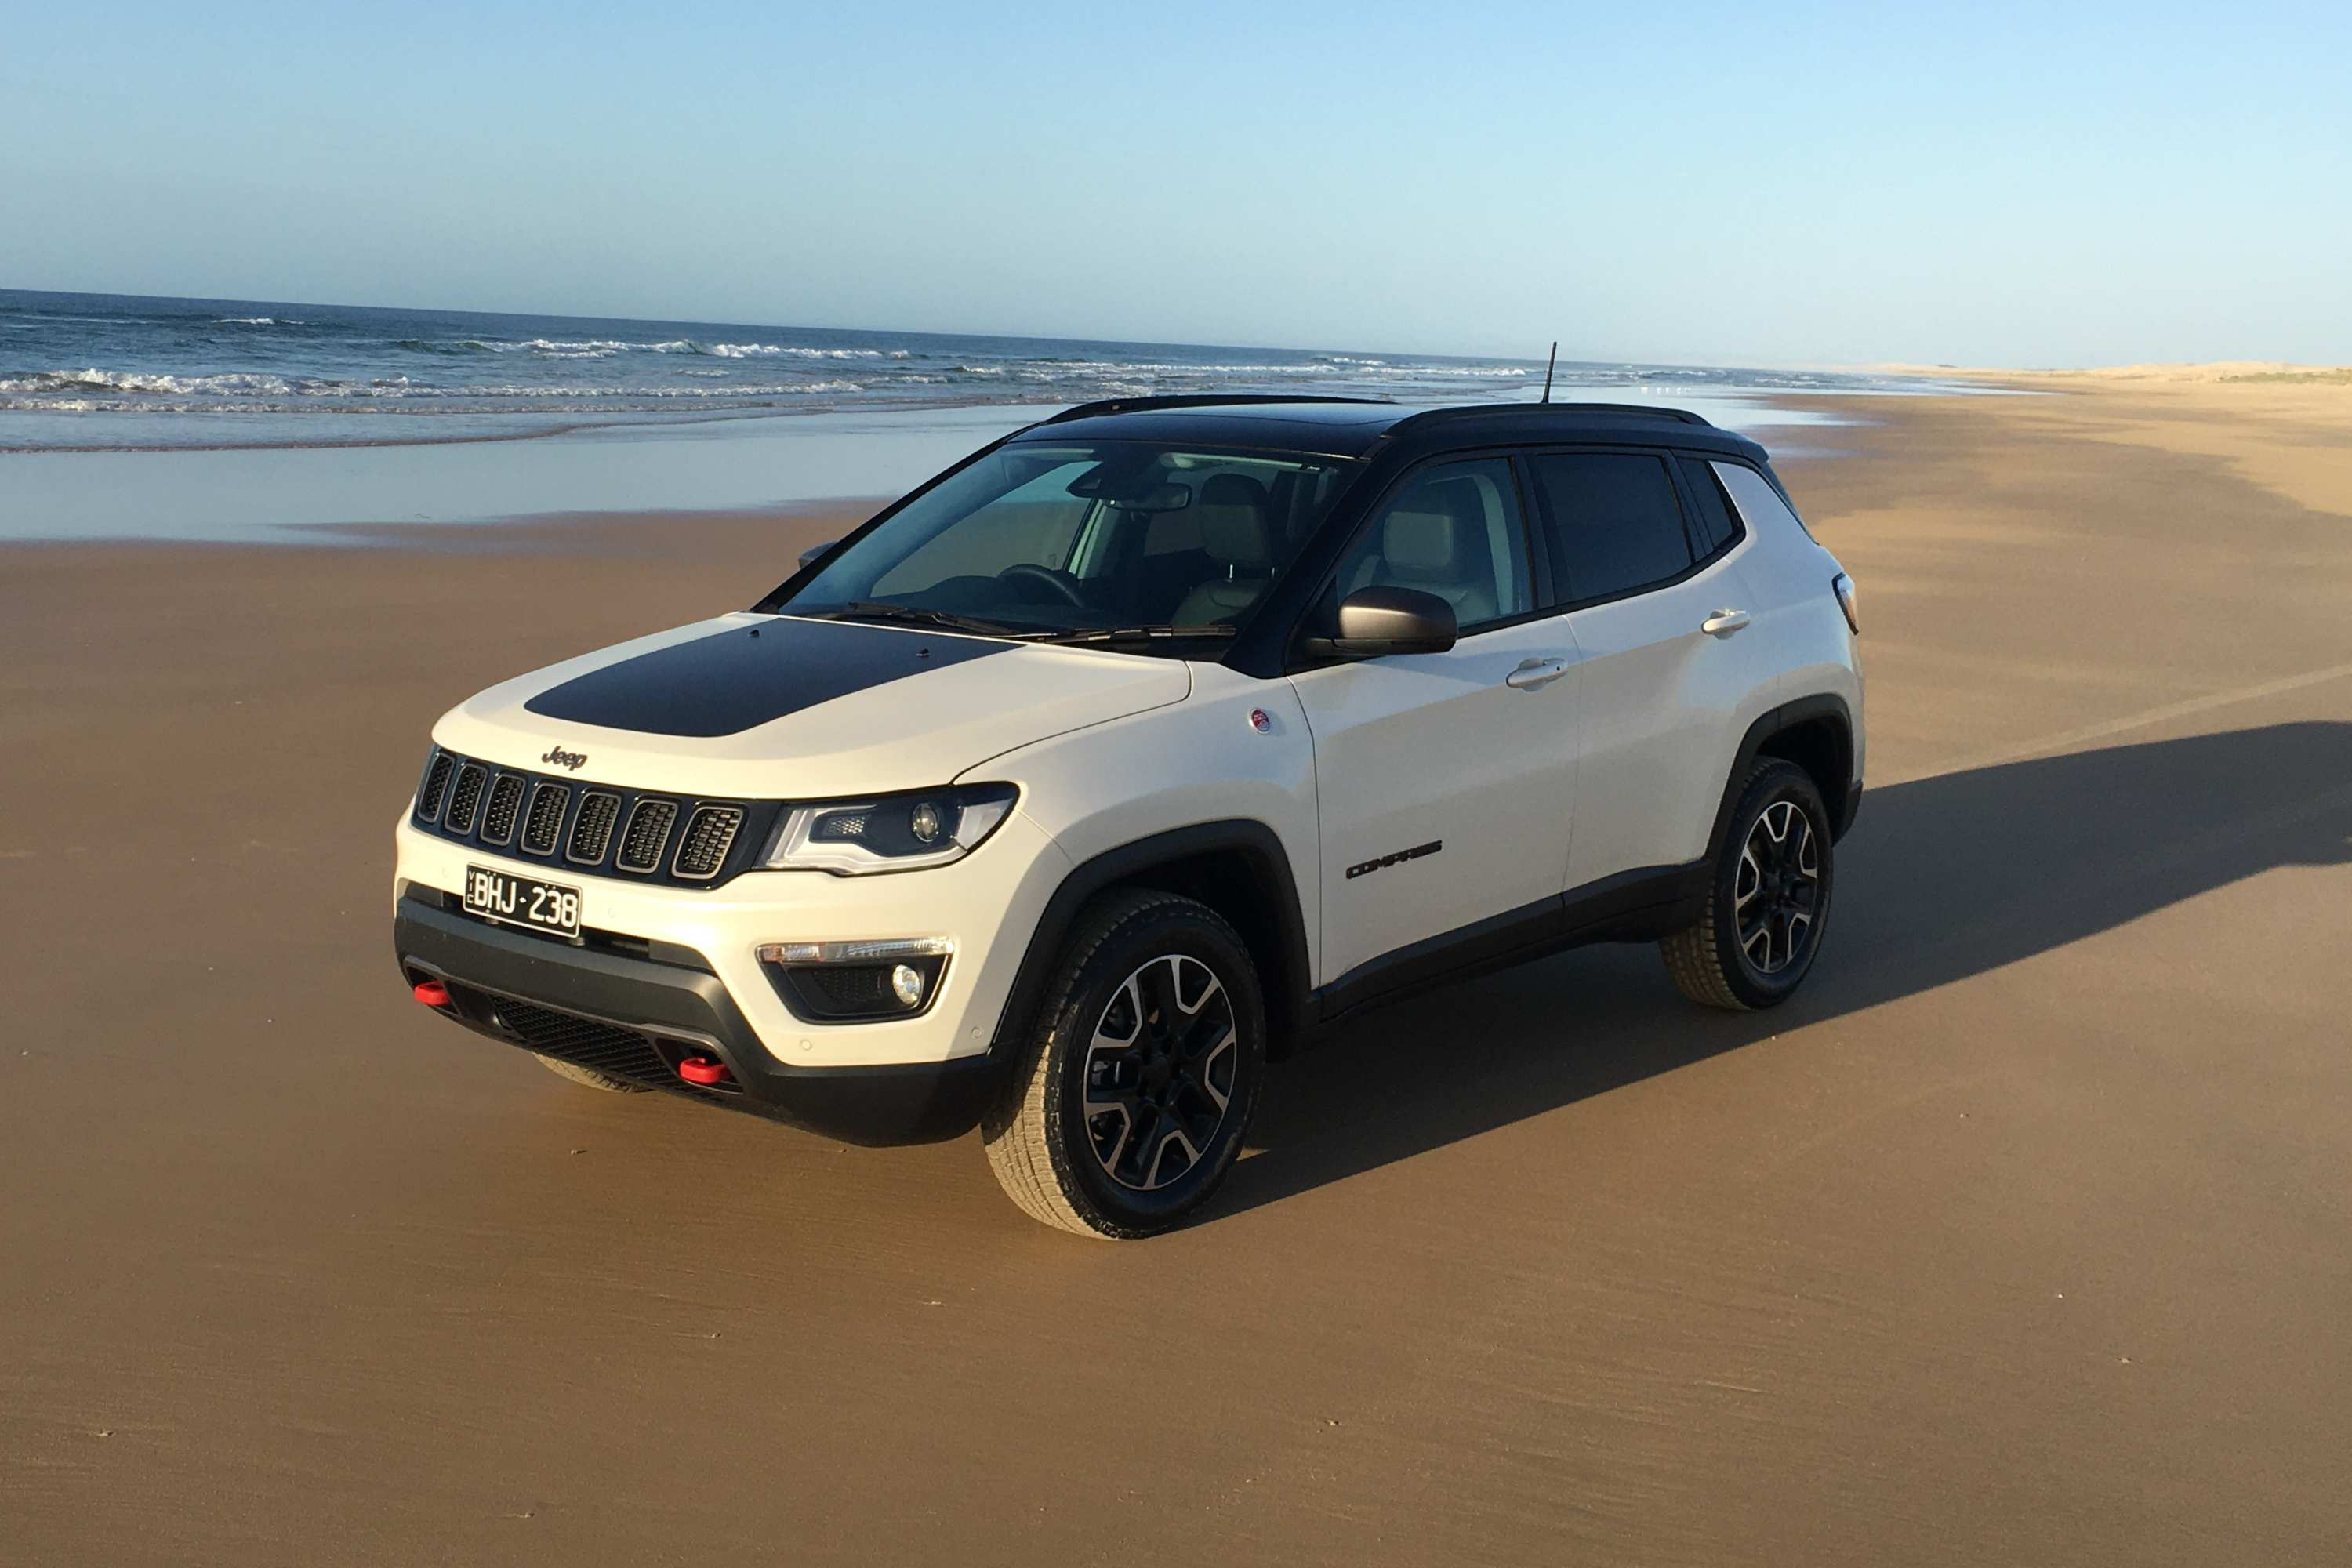 2020 Jeep Compass Trailhawk beach